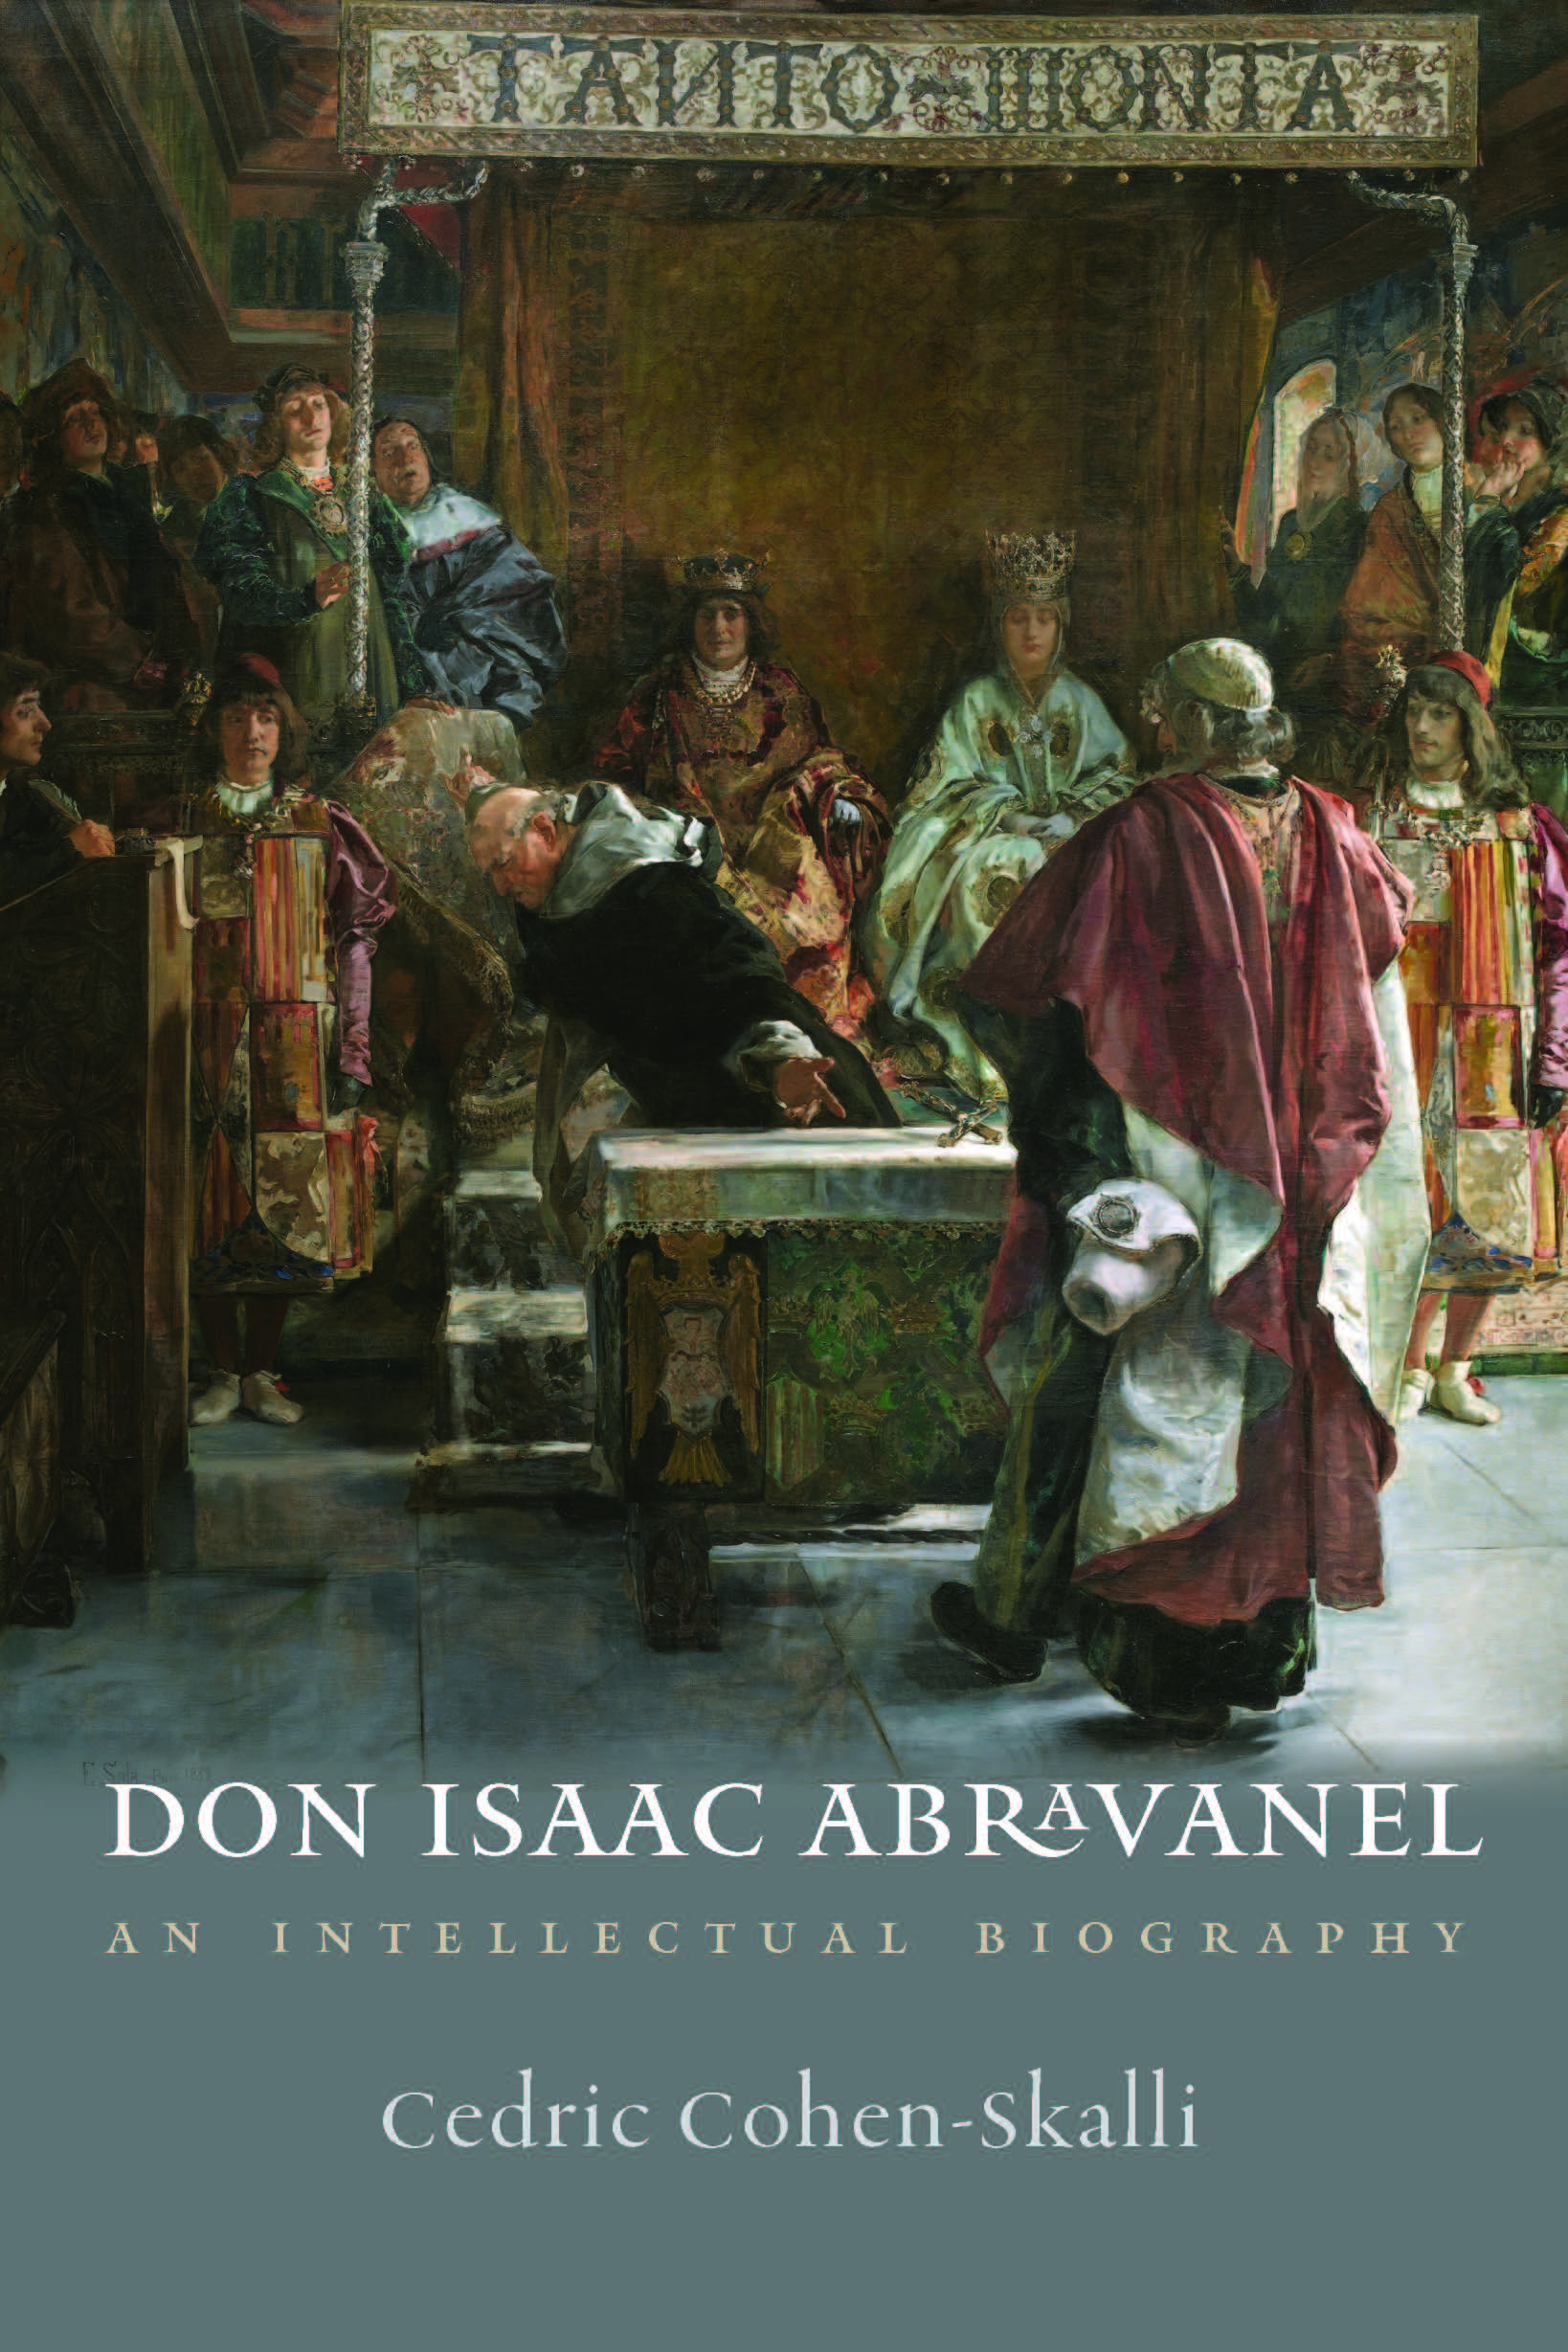 Don Isaac Abravanel: An Intellectual Biography